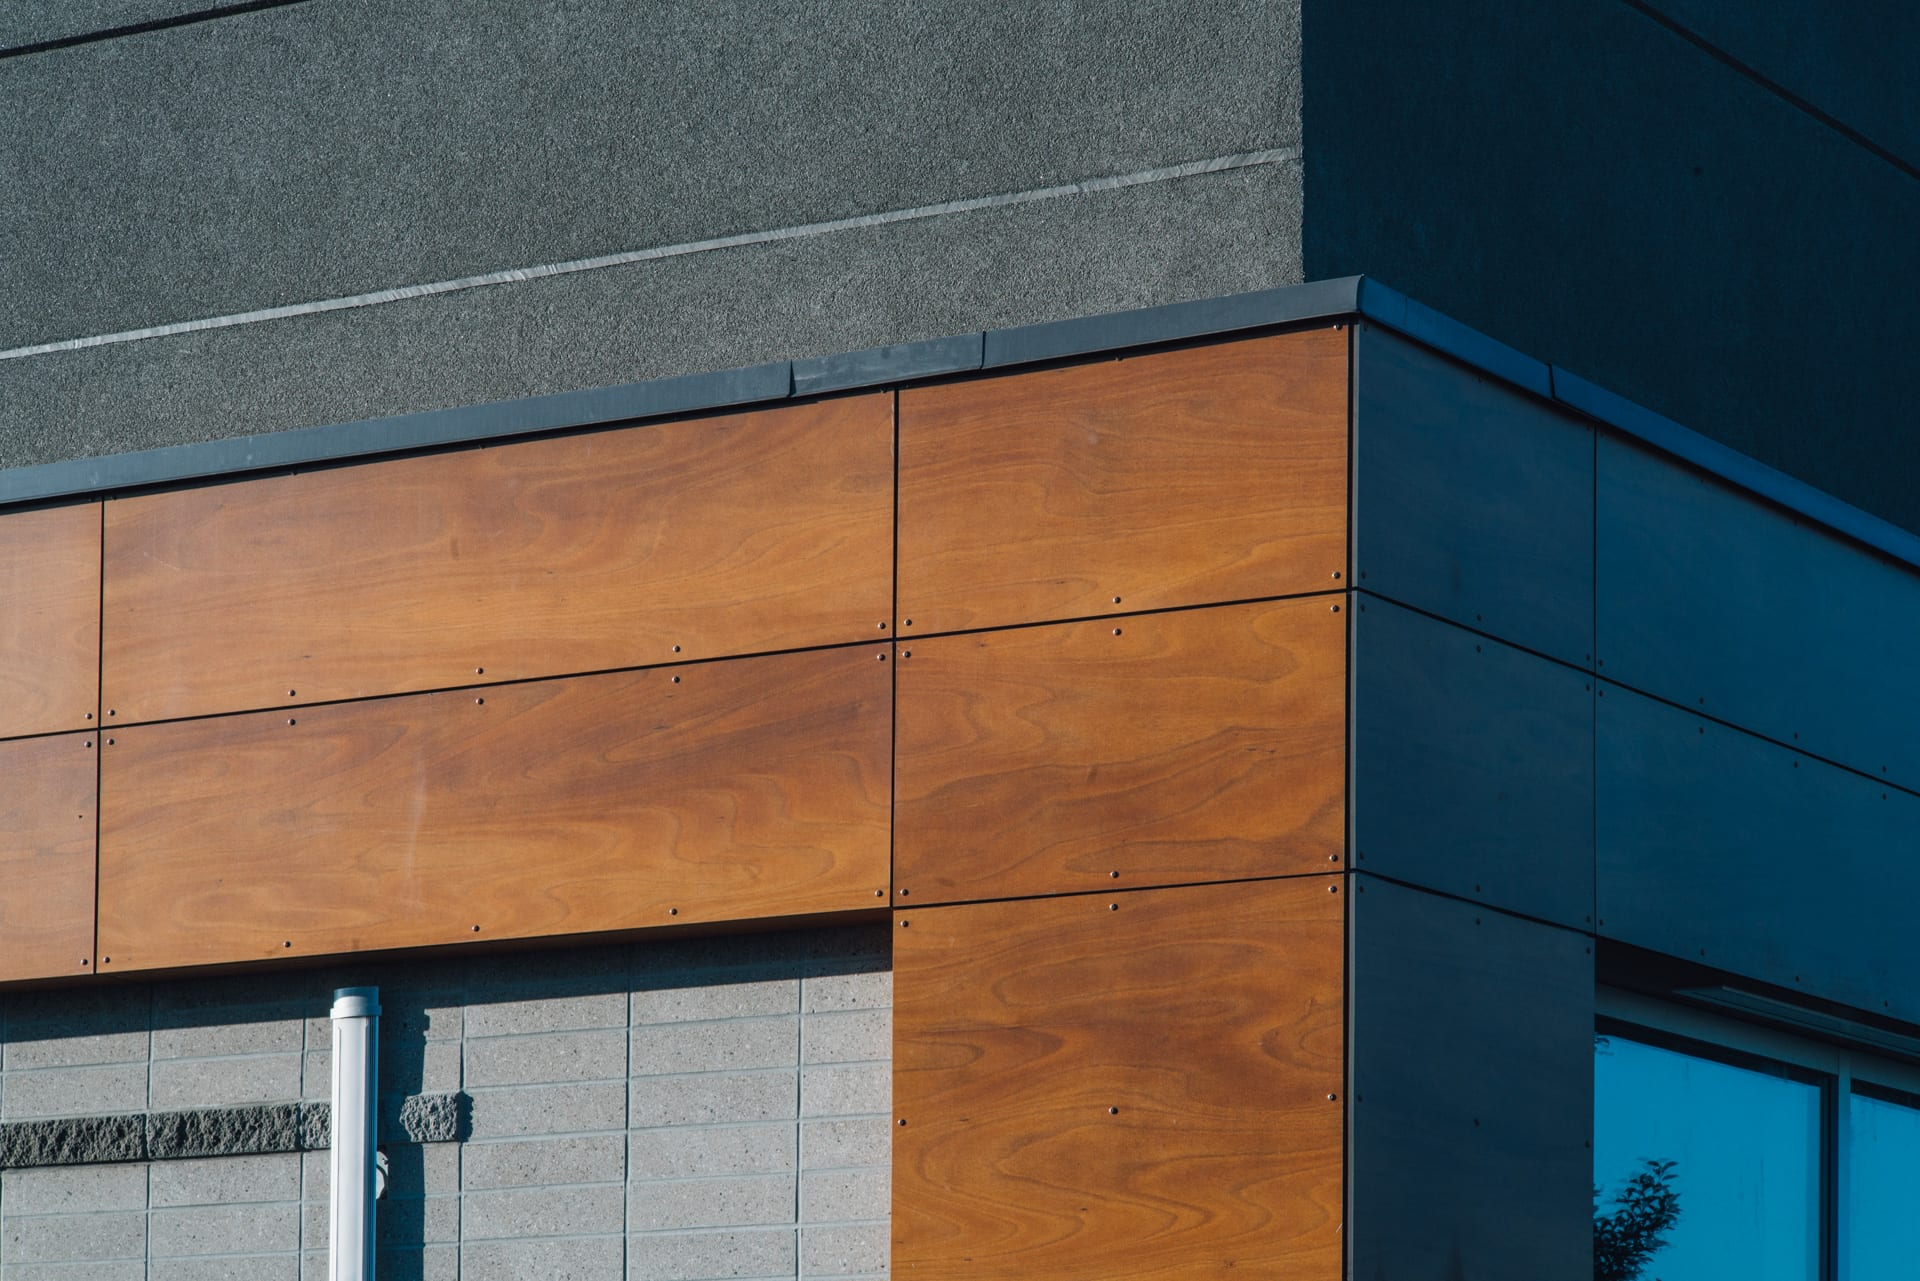 Wood composite panels / Phenolic Resin Panels, on the corner of a building.